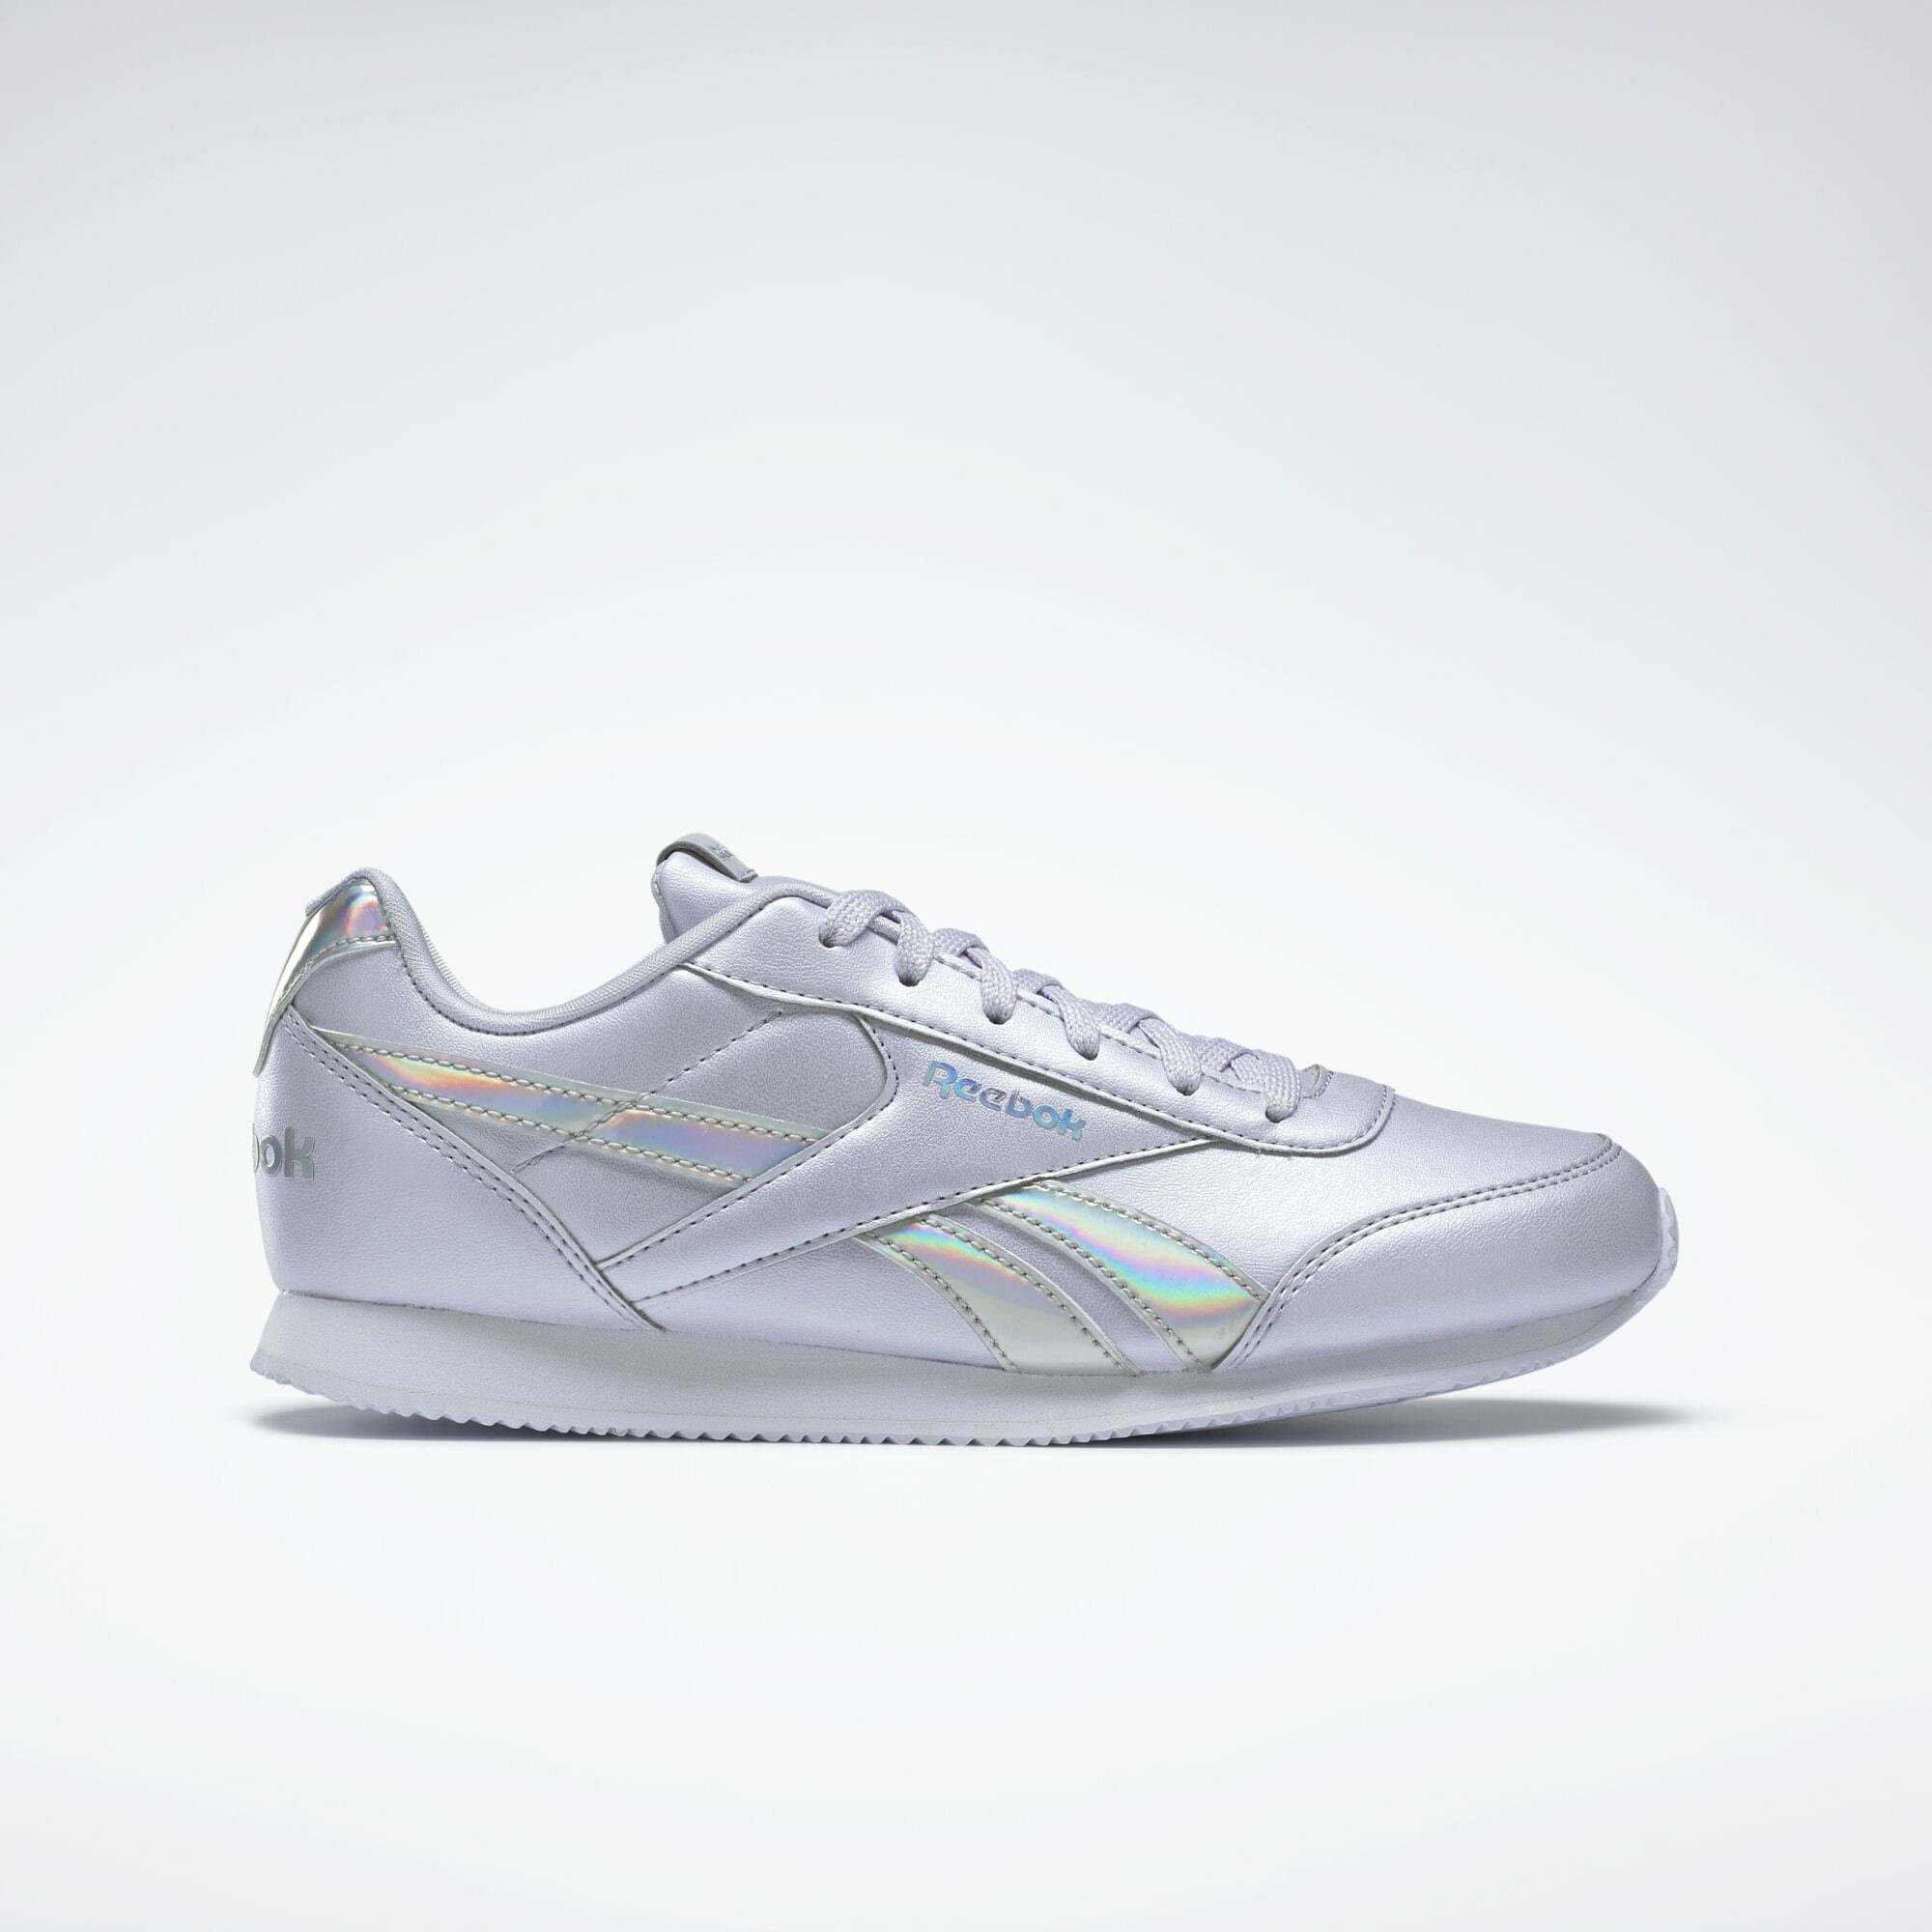 Reebok Classic »Reebok Royal Classic Jogger 2.0 Shoes« Sneaker, Perlglanz Obermaterial aus Synthetikleder online kaufen | OTTO